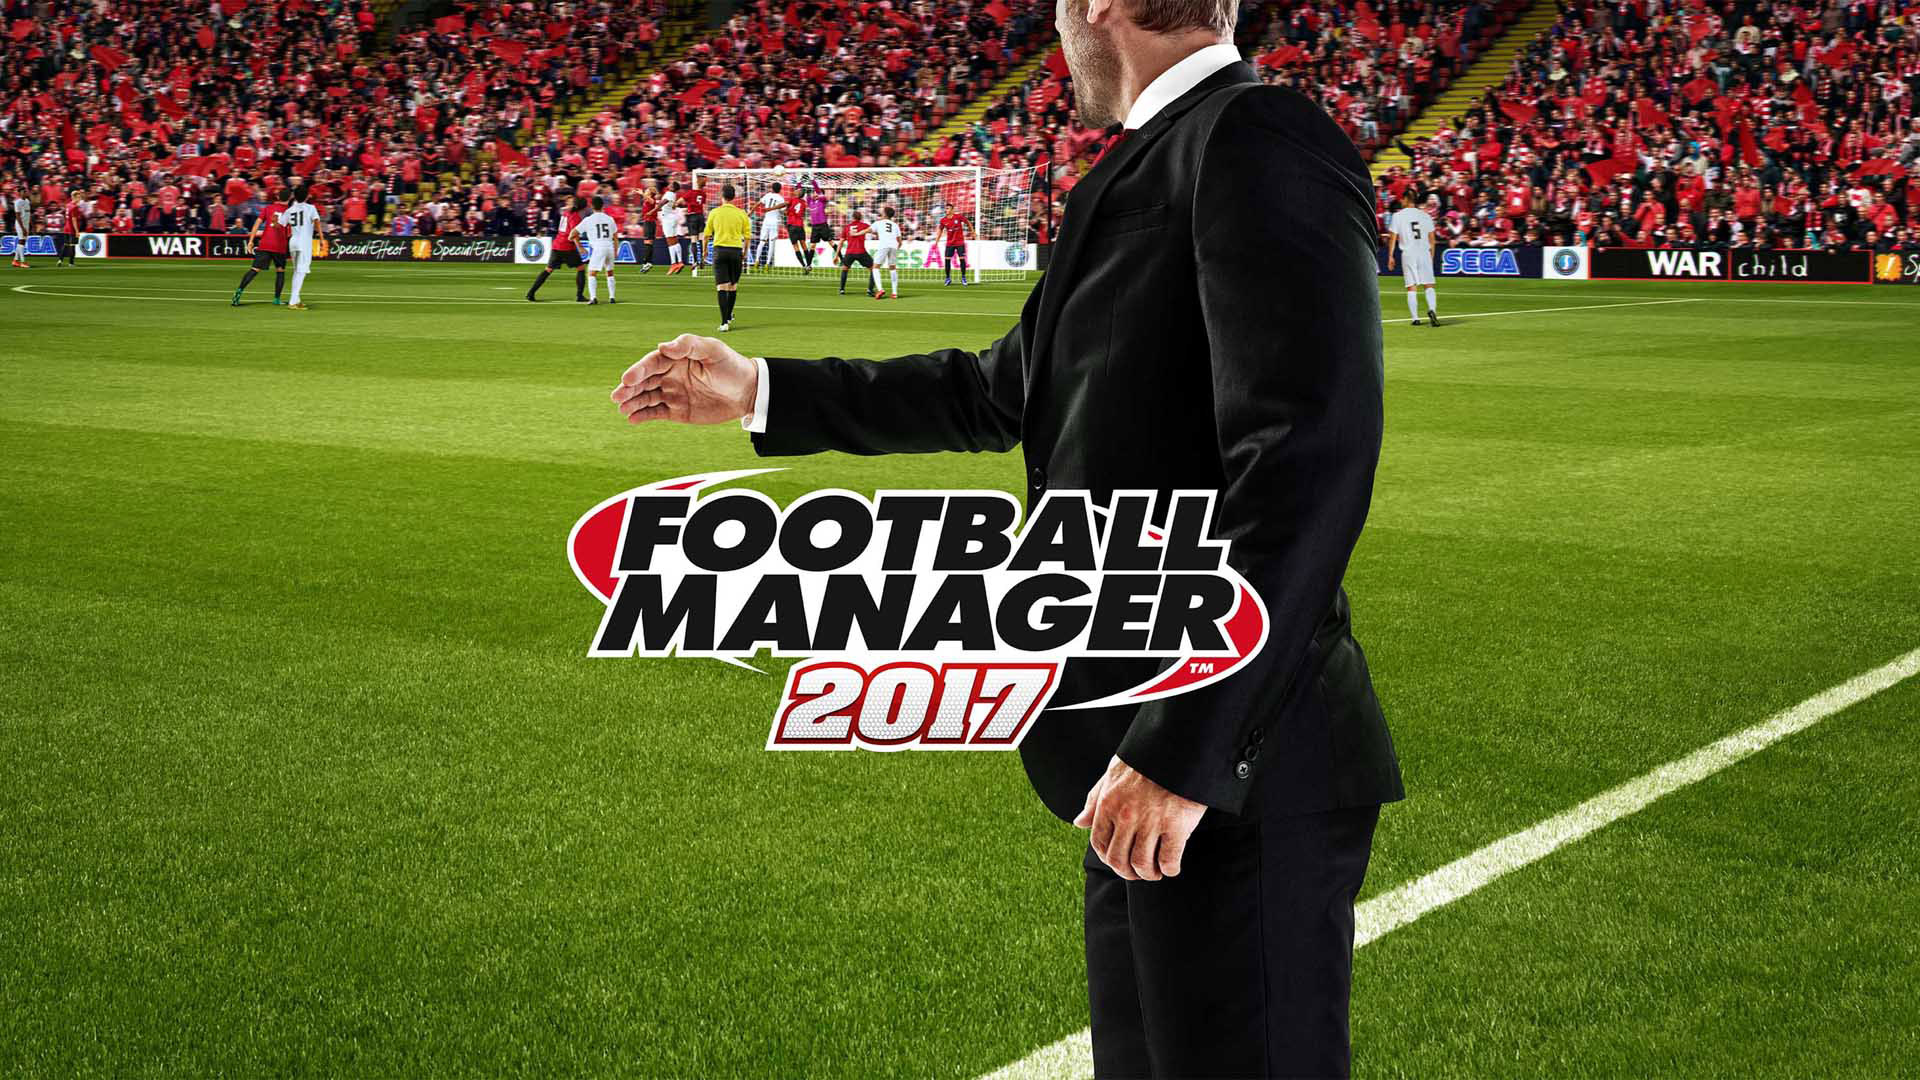 Free Football Manager 2017 Wallpaper in 1920x1080